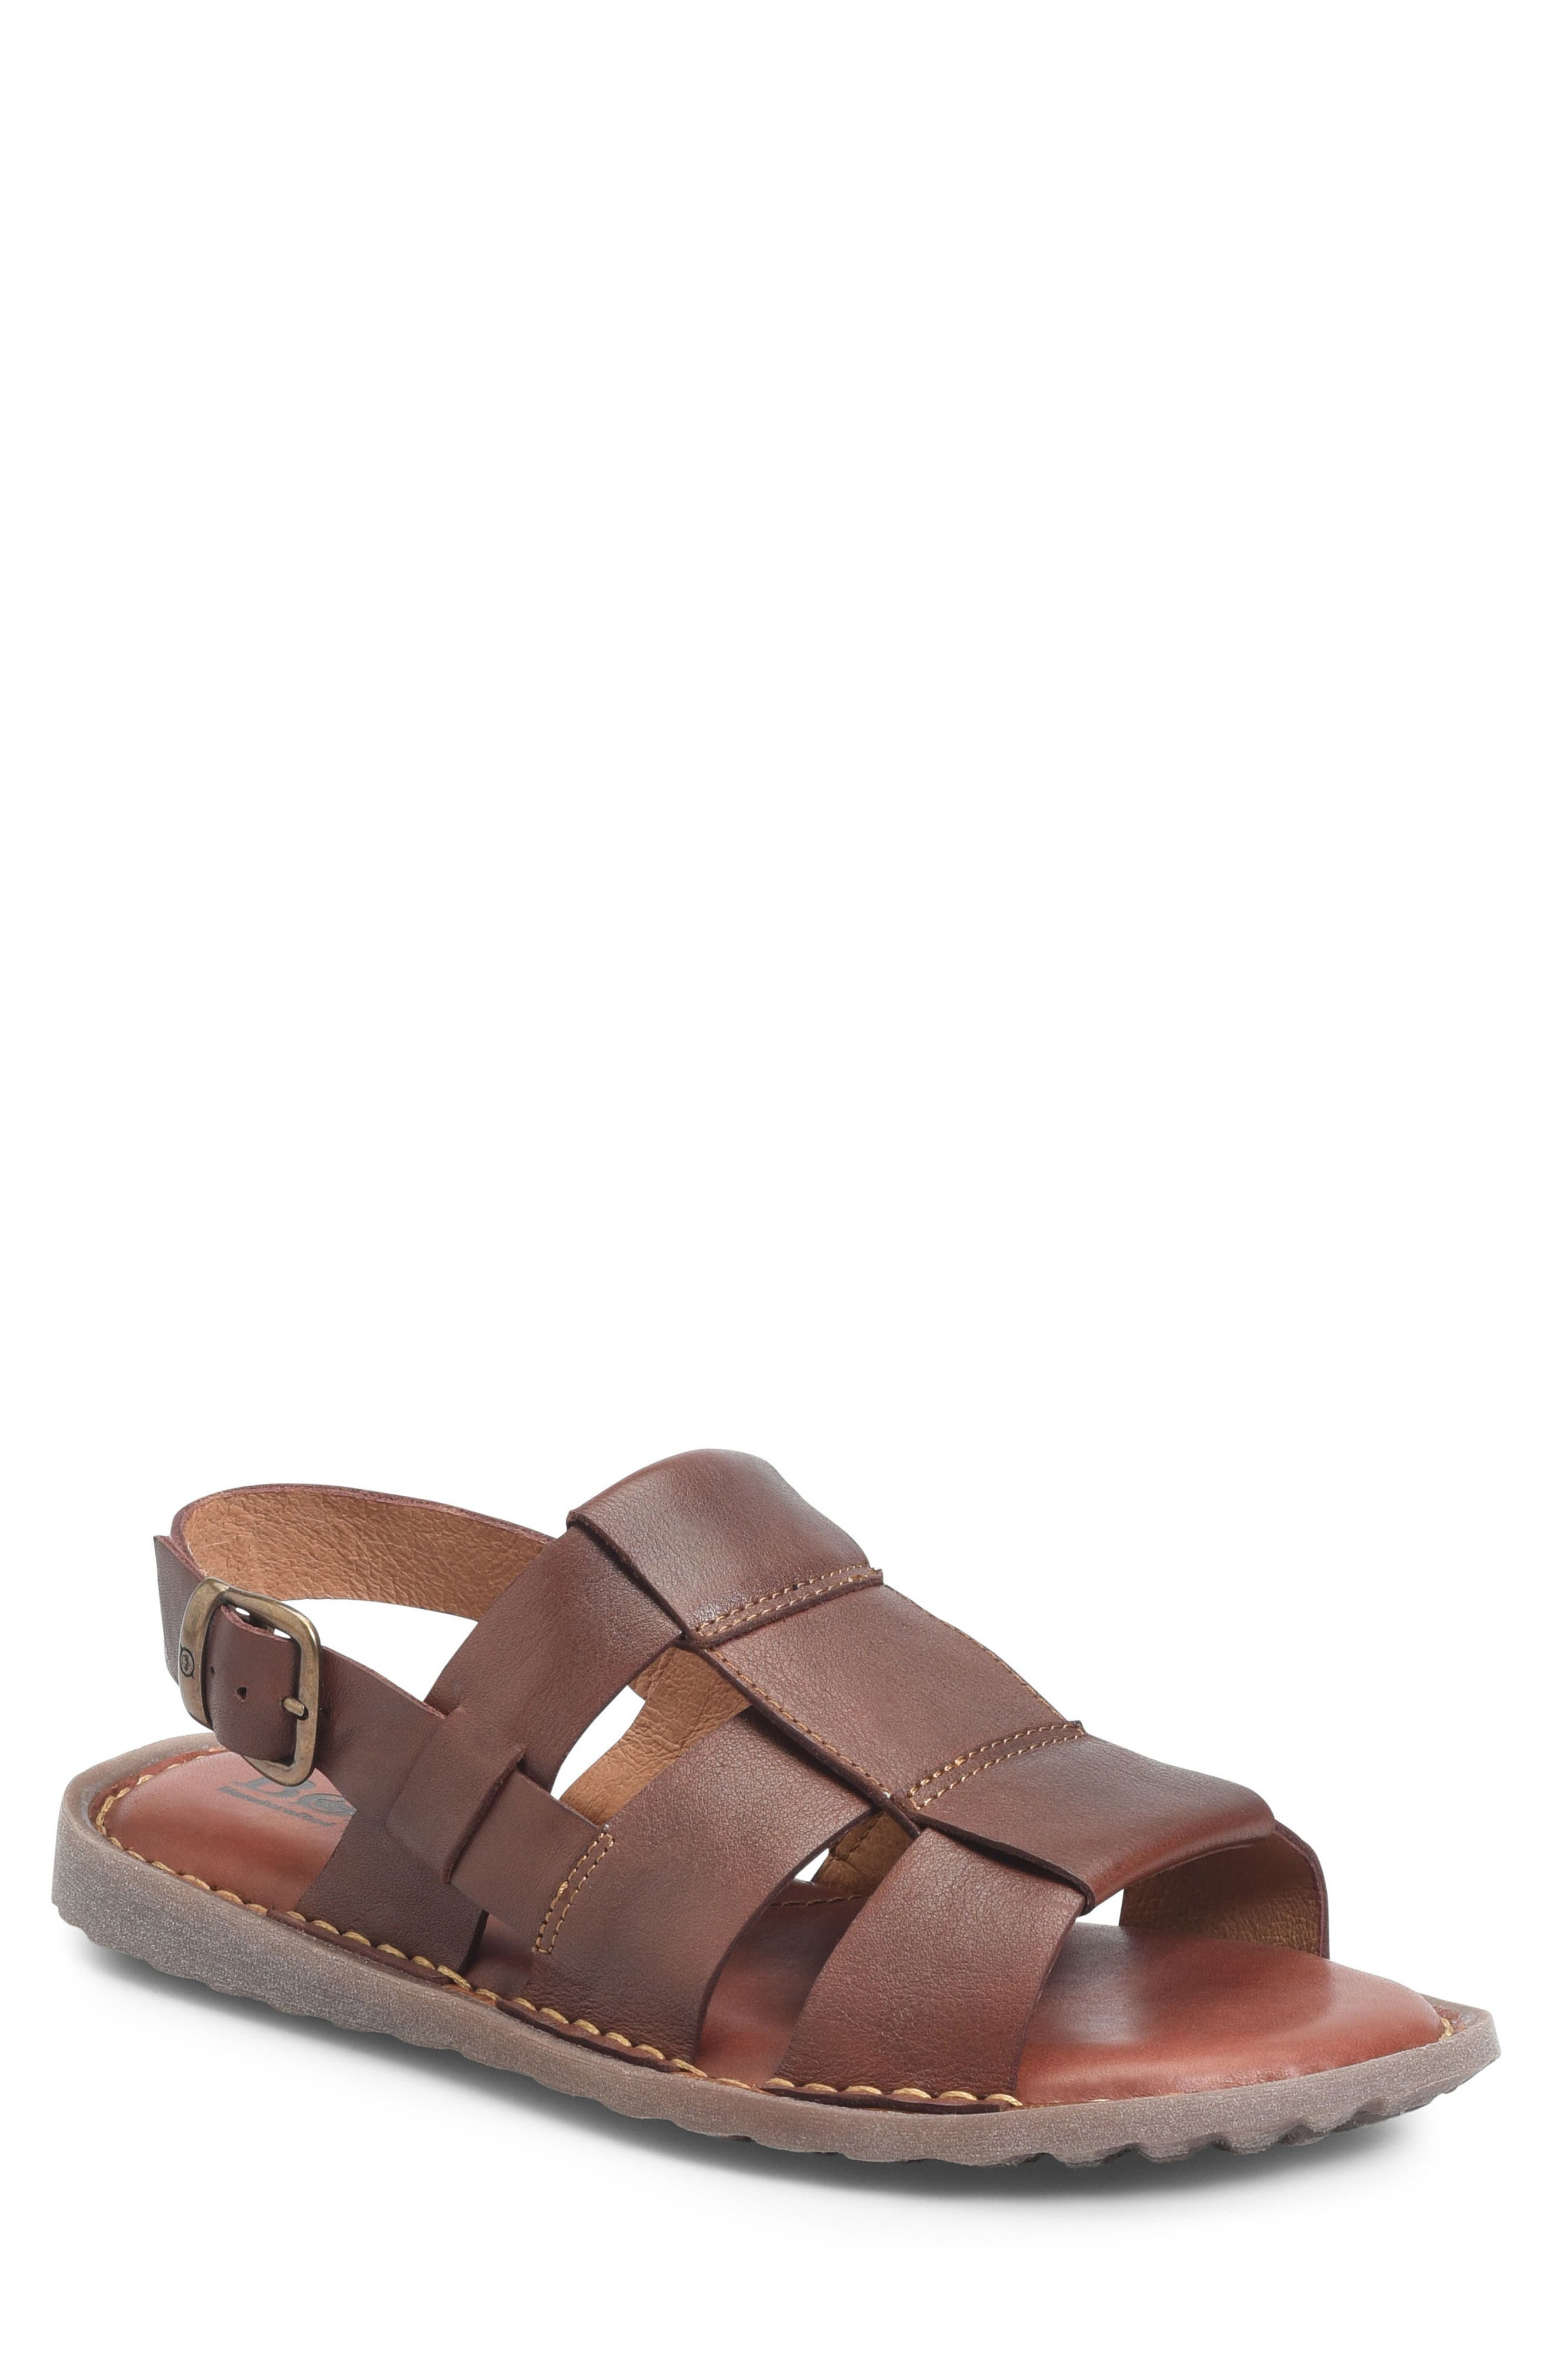 Surf Fisherman Sandal,                         Main,                         color, BROWN LEATHER